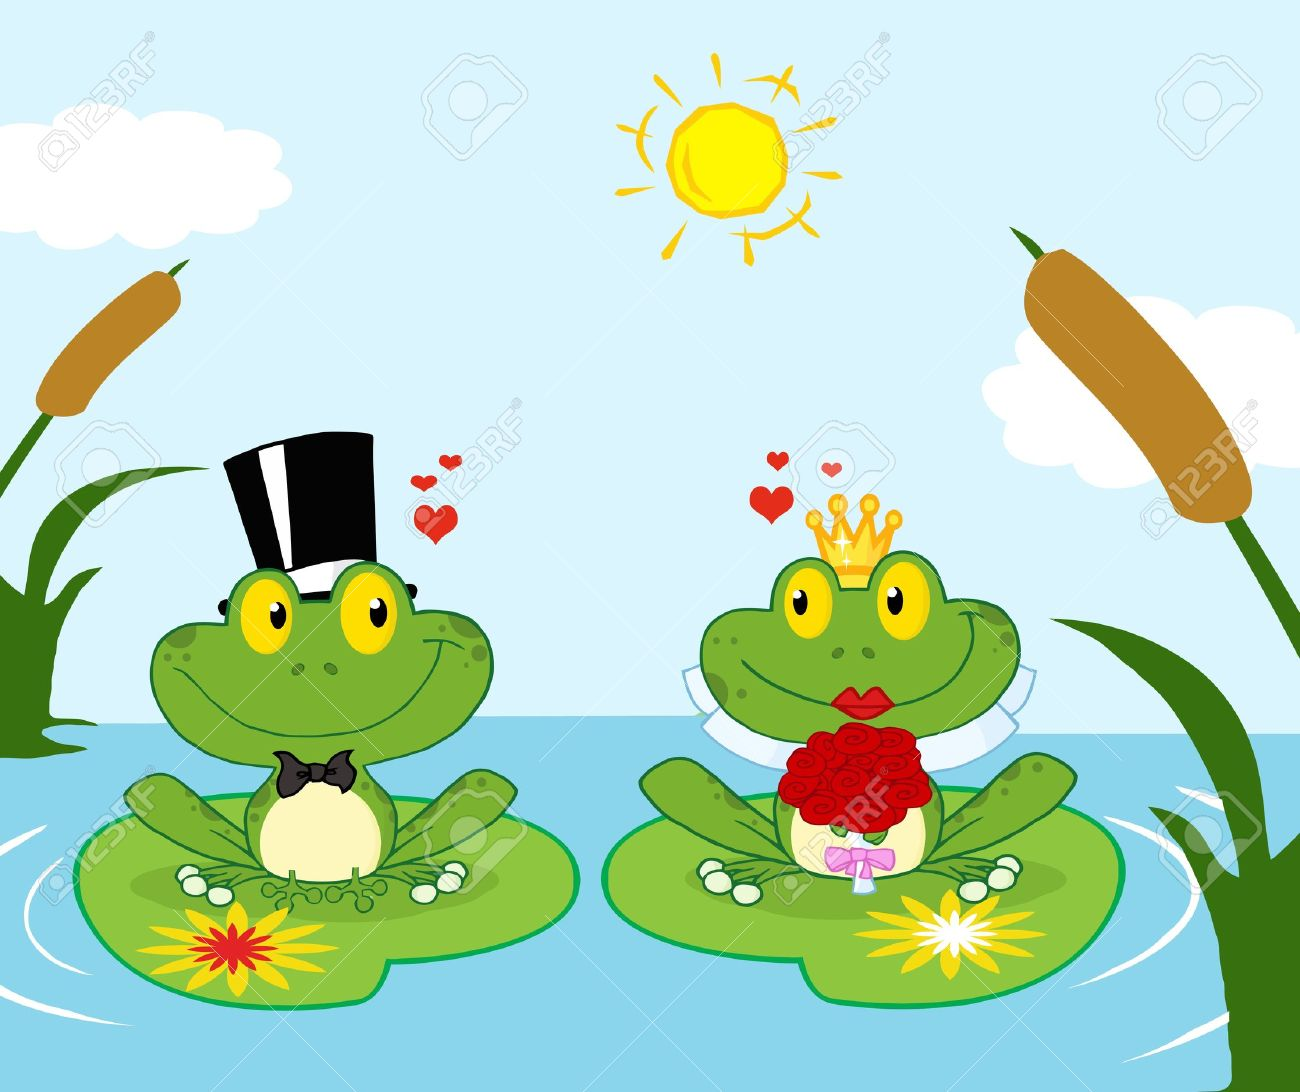 Bride And Groom Frogs Cartoon Characters On A Leafs In Lake.